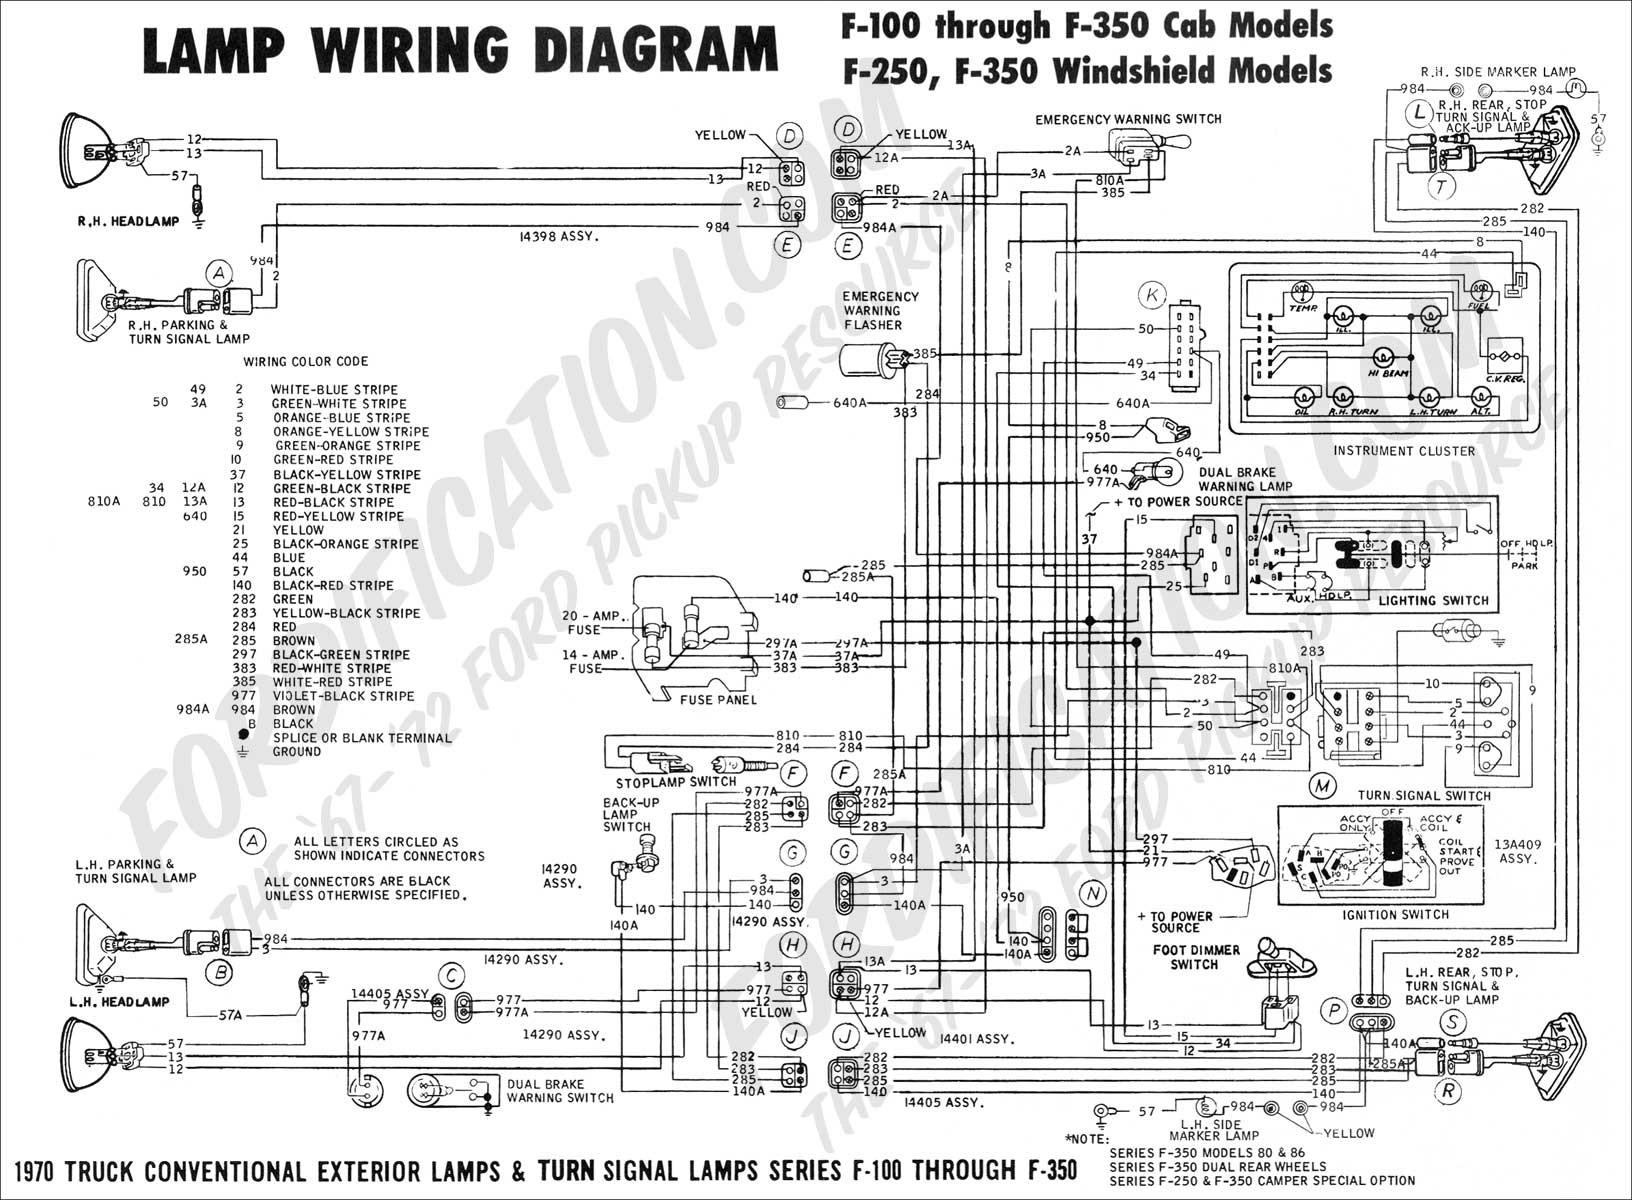 [QMVU_8575]  D11B 1988 Ford E 350 Wiring Diagram | Wiring Resources | 1988 Ford E150 Wiring Diagram |  | Wiring Resources